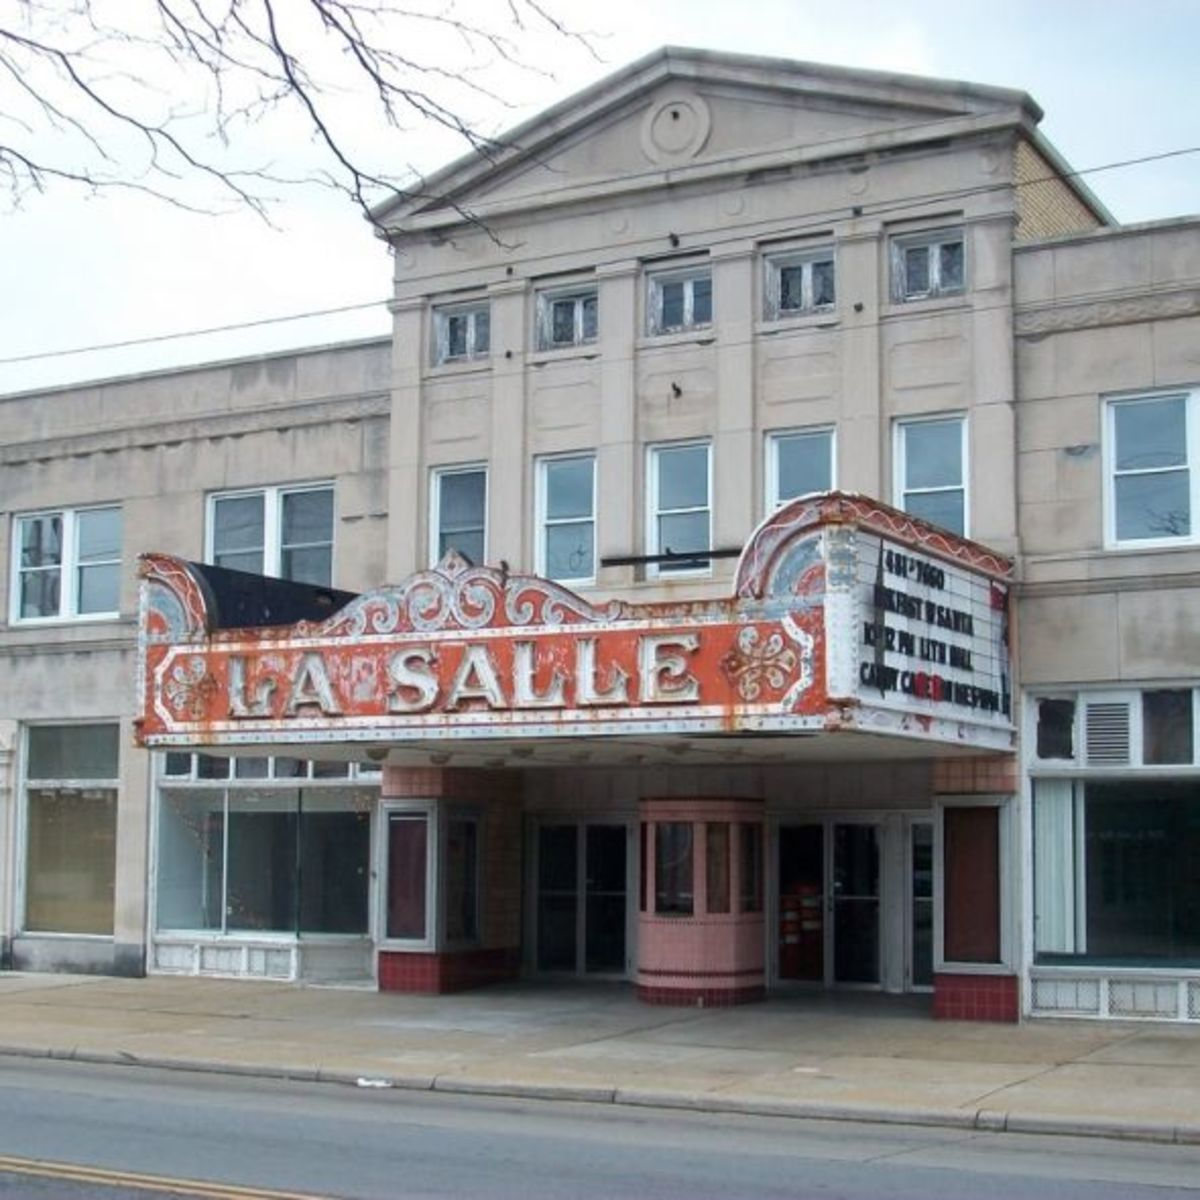 LaSalle Theater, East 185th St., Cleveland, OH